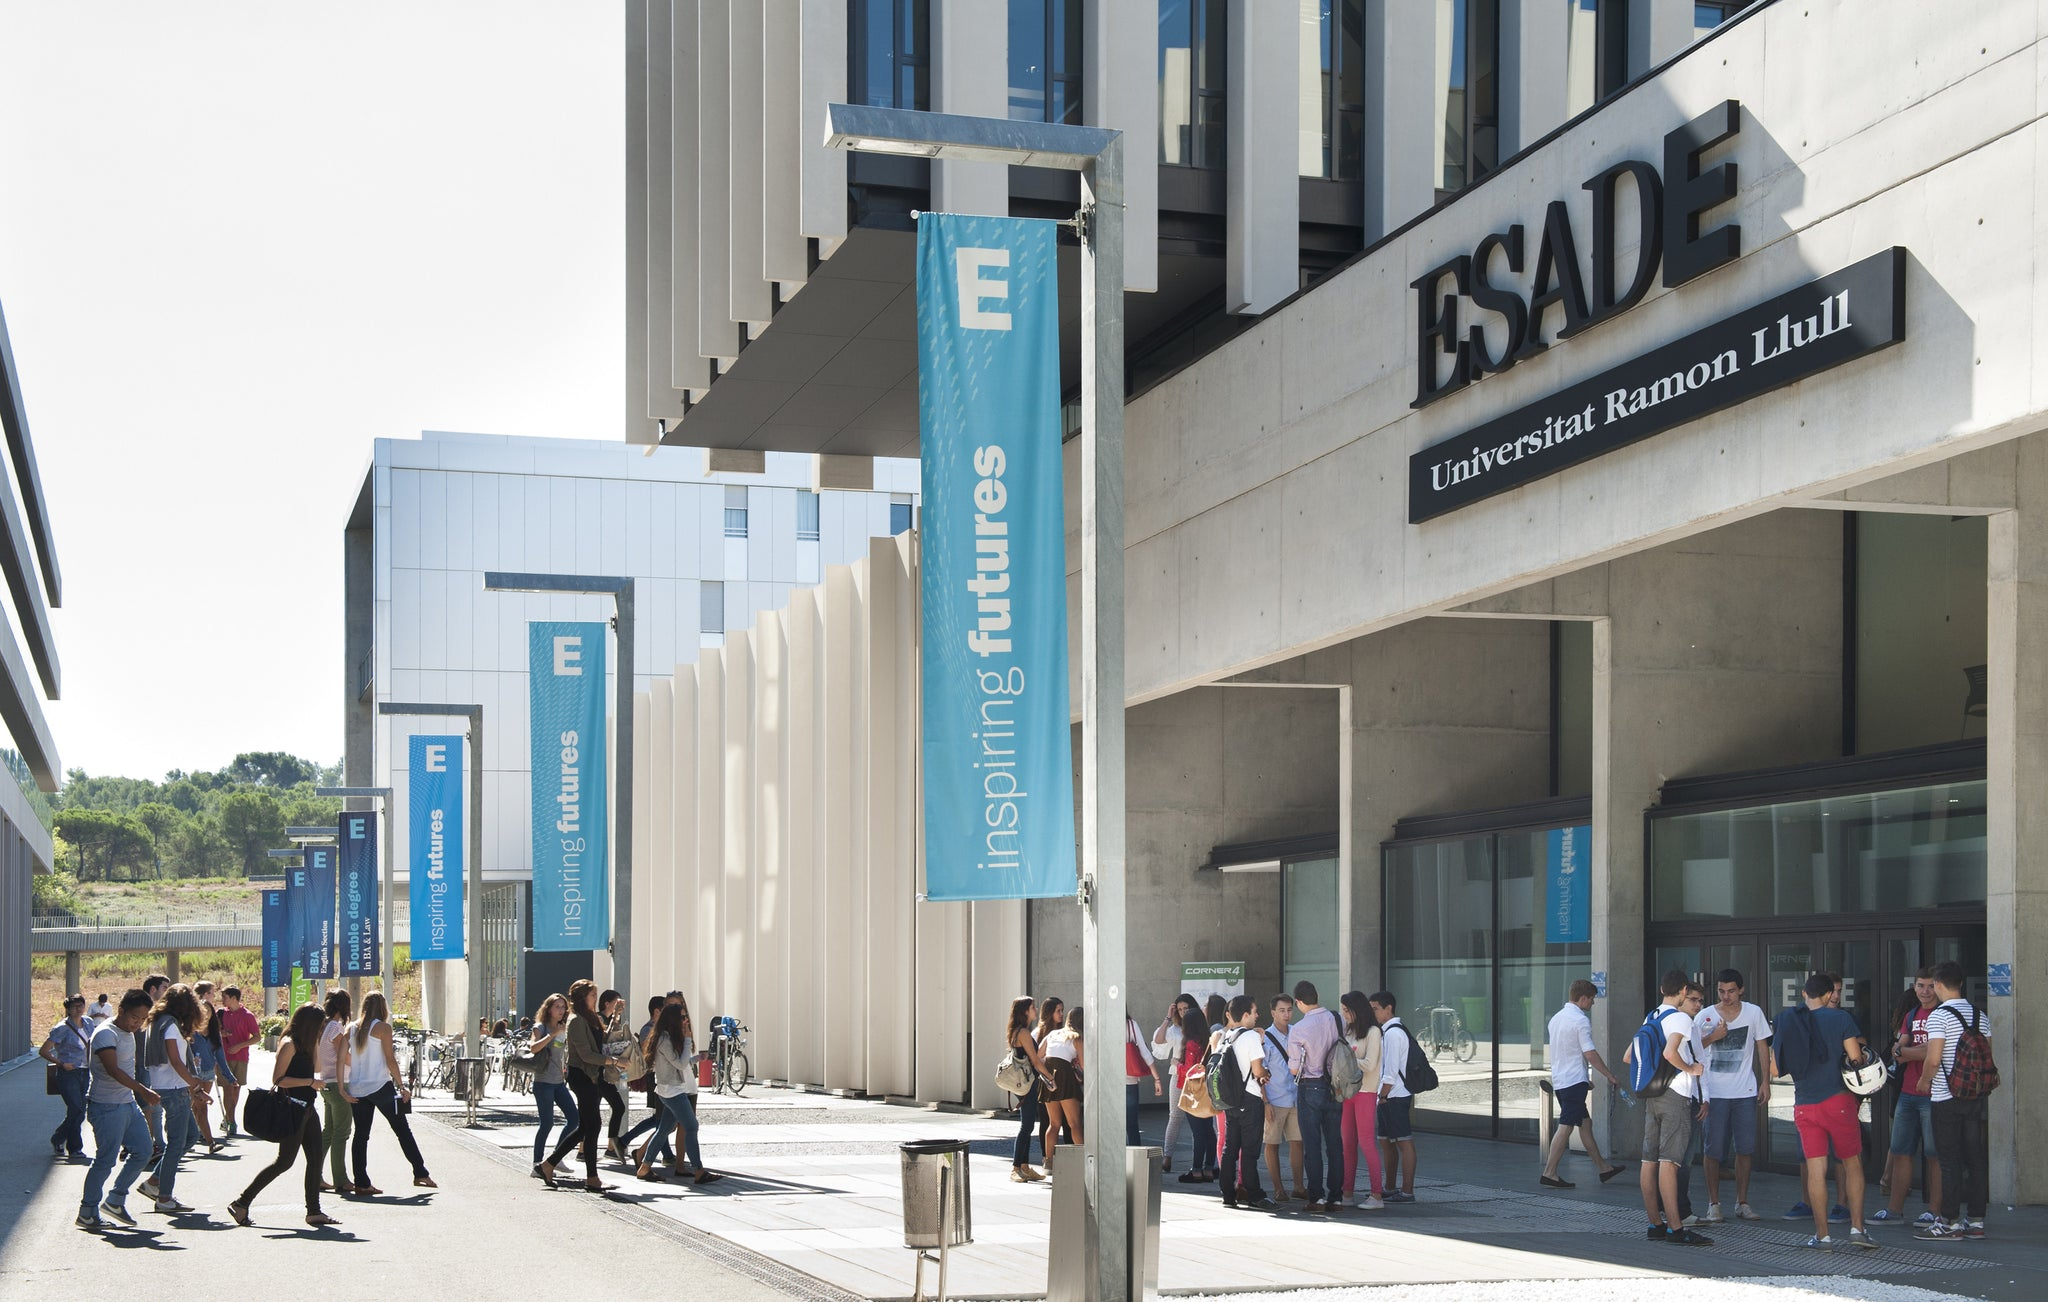 Lecture about Ethical Fashion at ESADE Business School